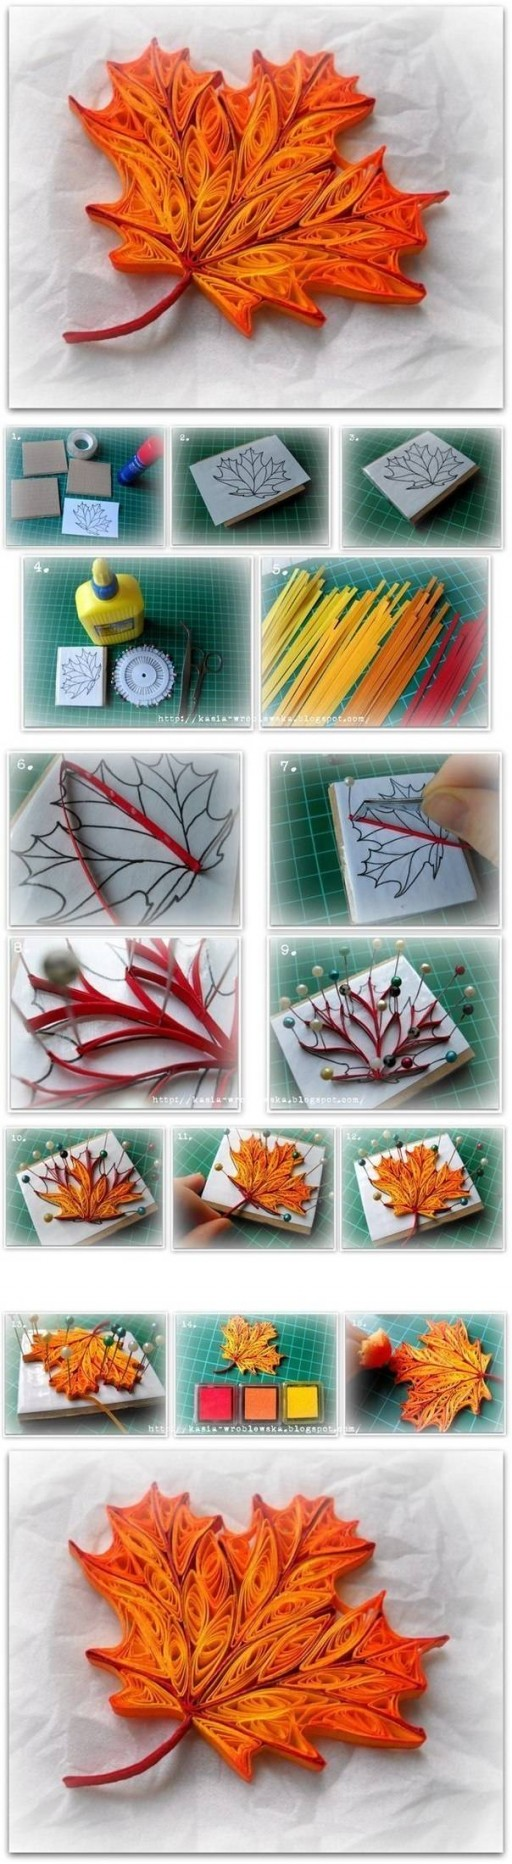 How to make Quilled Maple Leaf step by step DIY tutorial instructions 512x1864 How to make Quilled Maple Leaf step by step DIY tutorial instructions